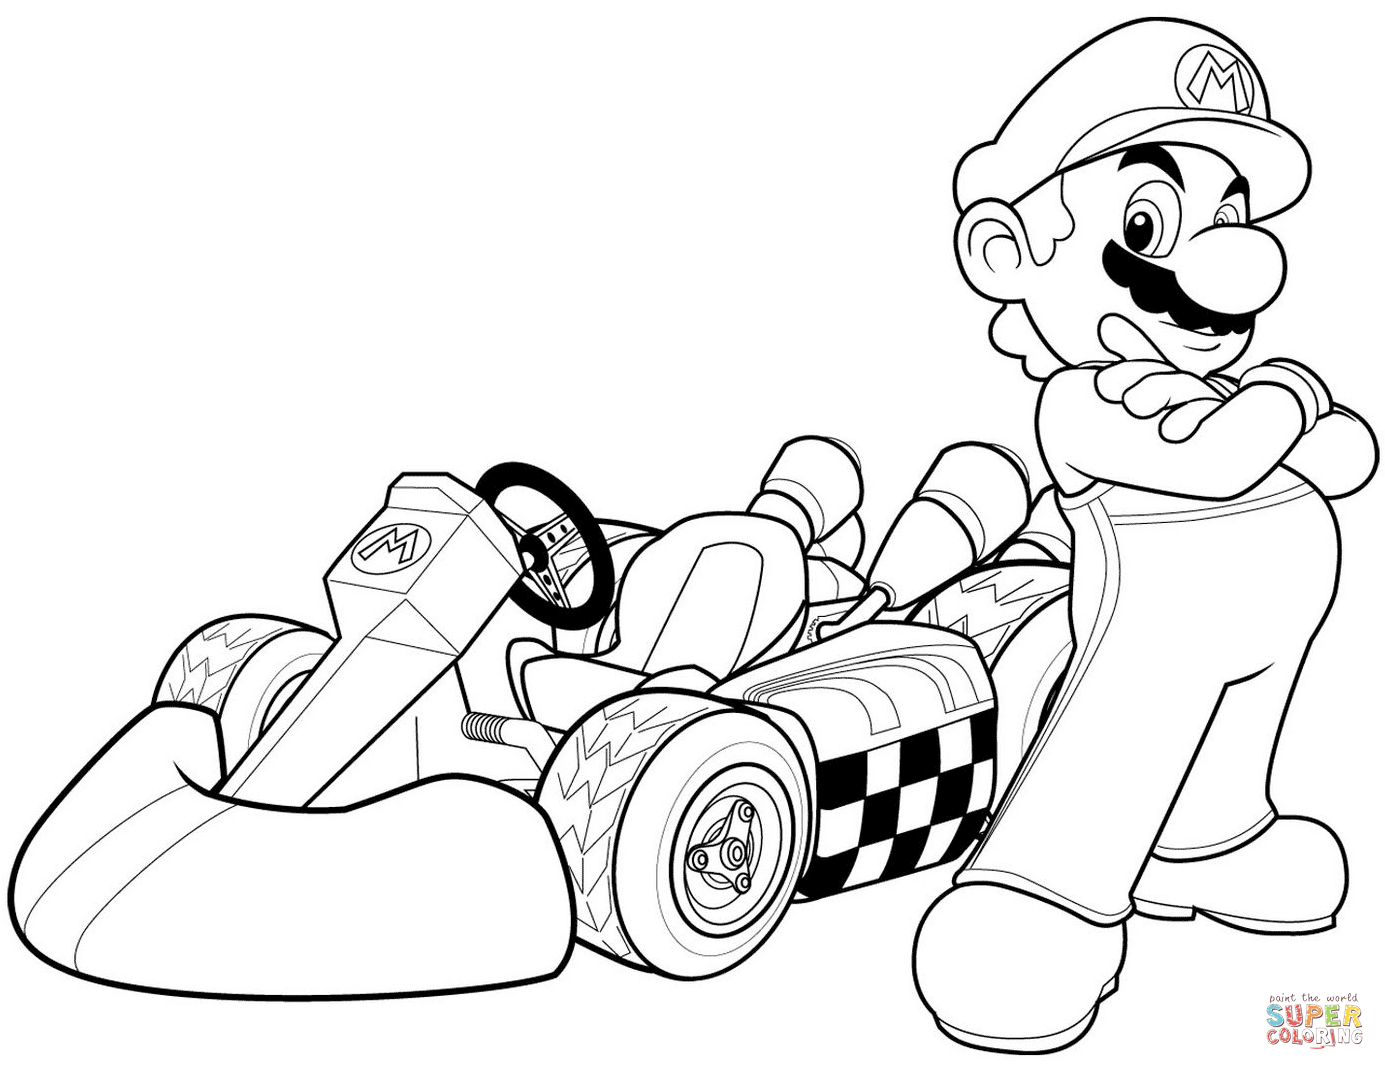 Mario Coloring Pages Download 8e - To print for your project